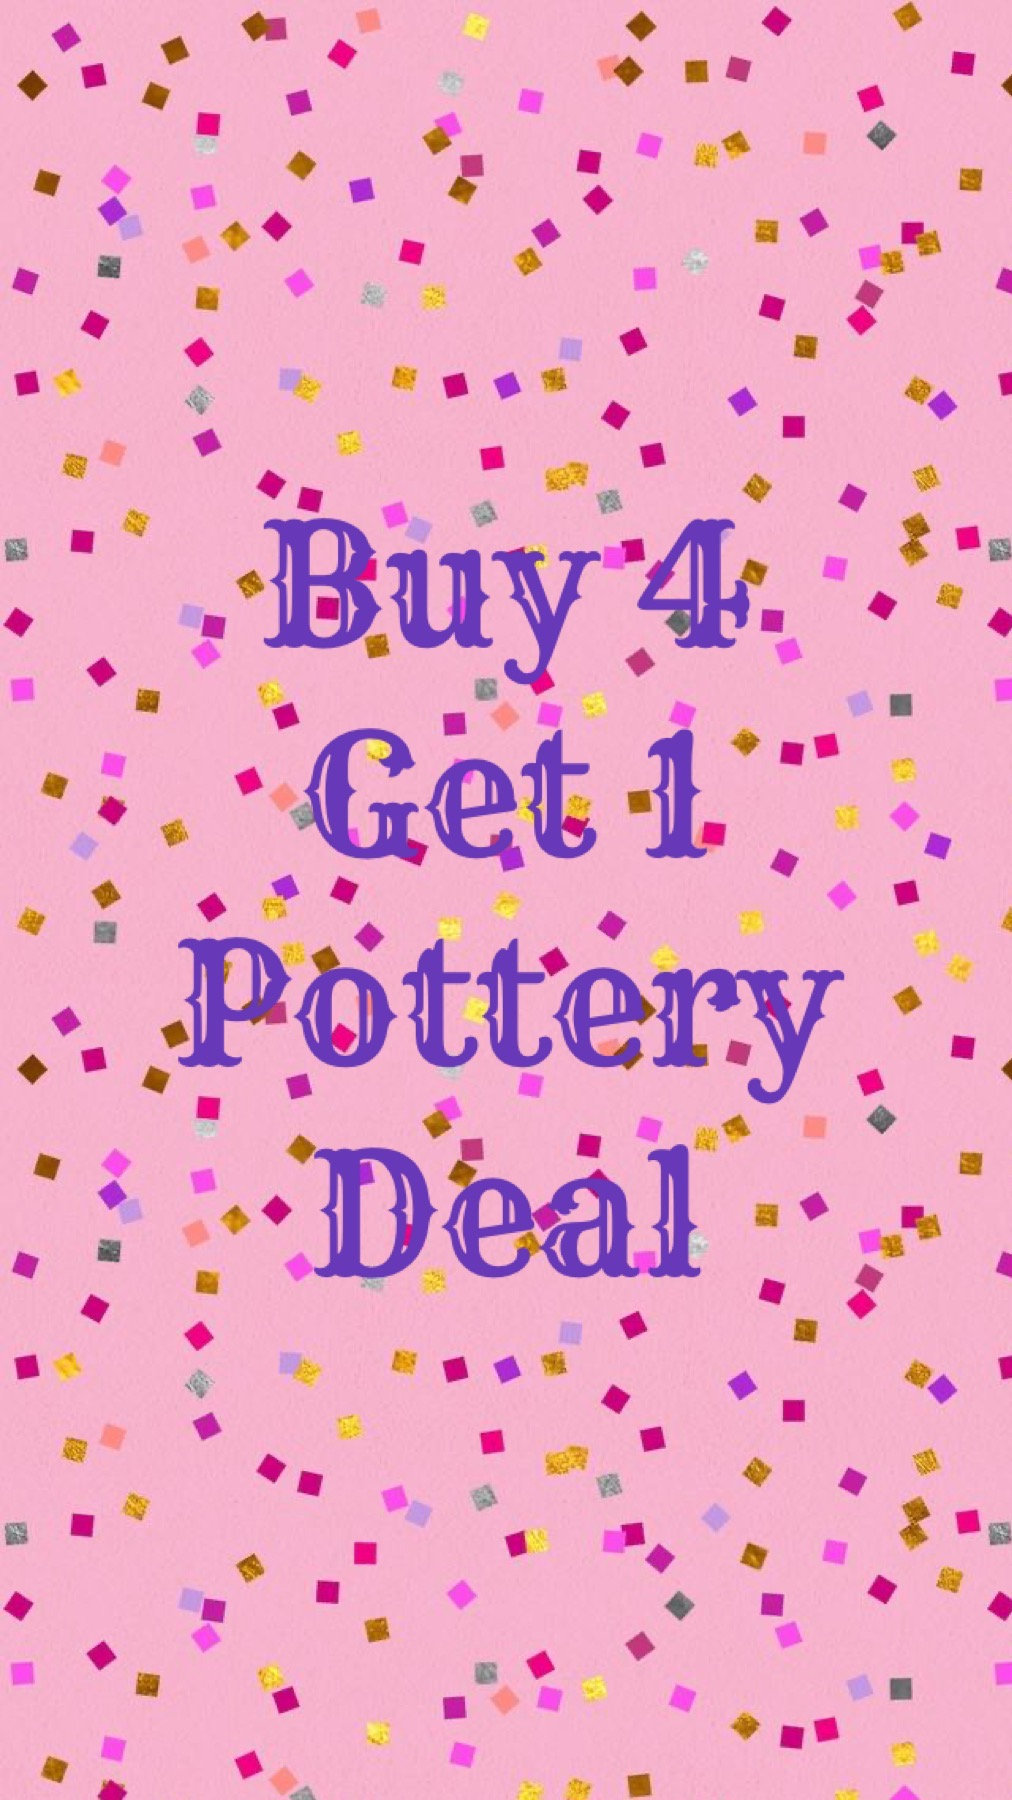 Buy 4 Pottery Wheel lessons, get 1 free!